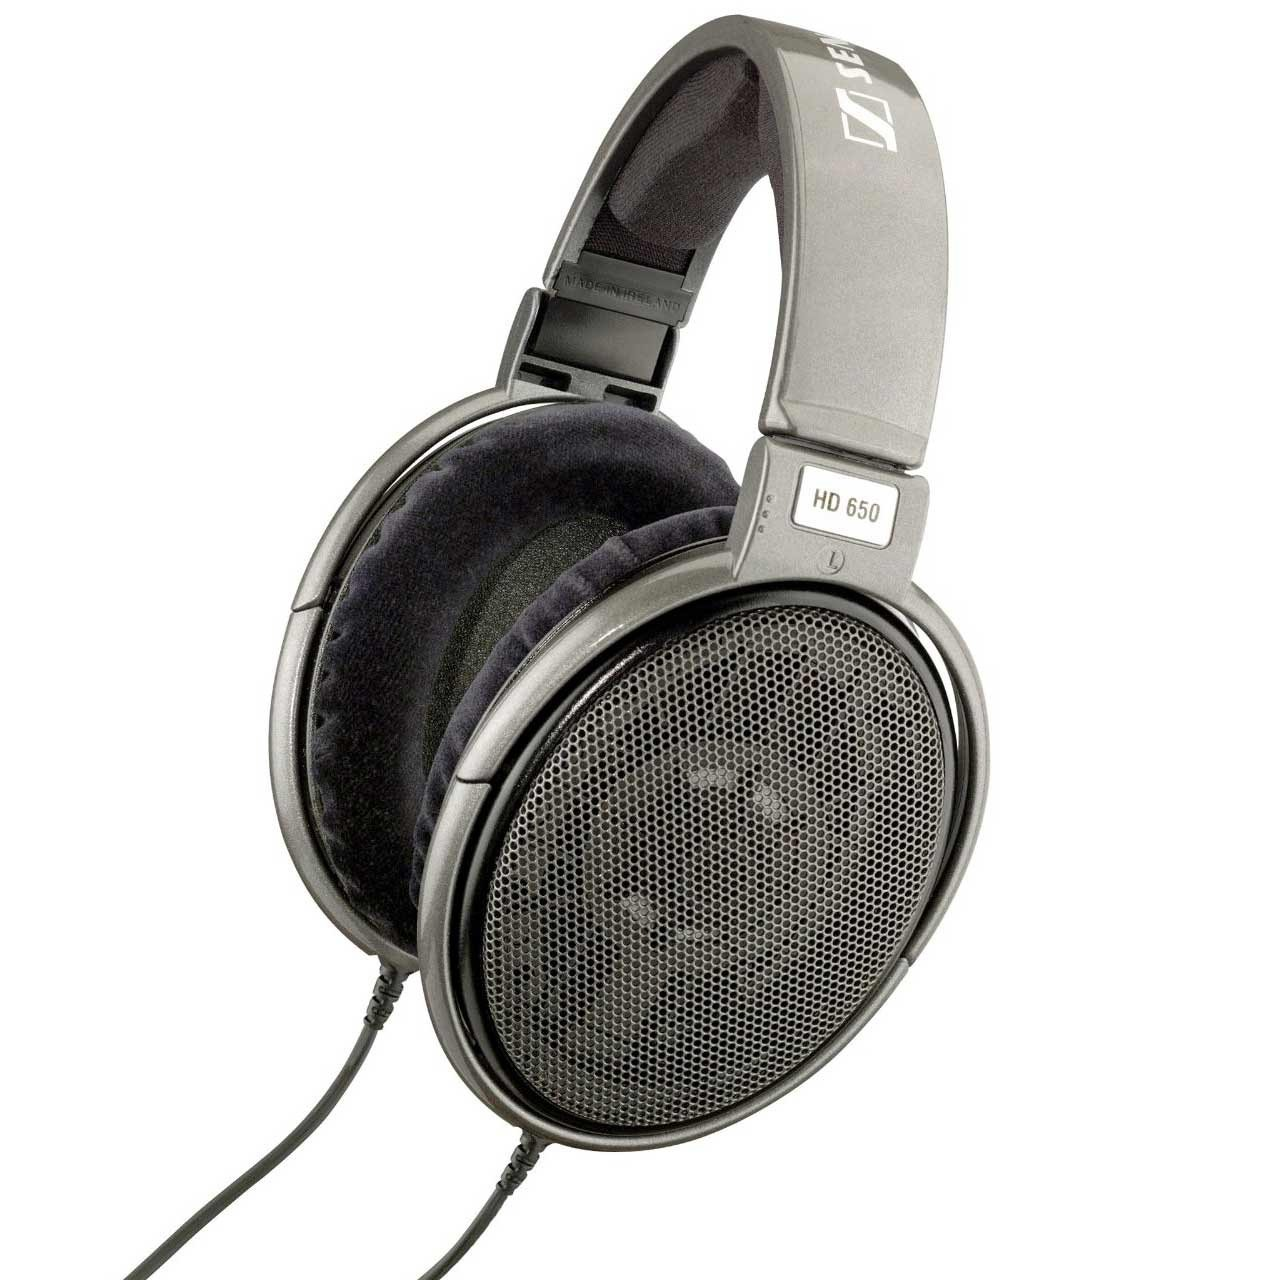 Sennheiser HD 650 Open-Back Professional headphones